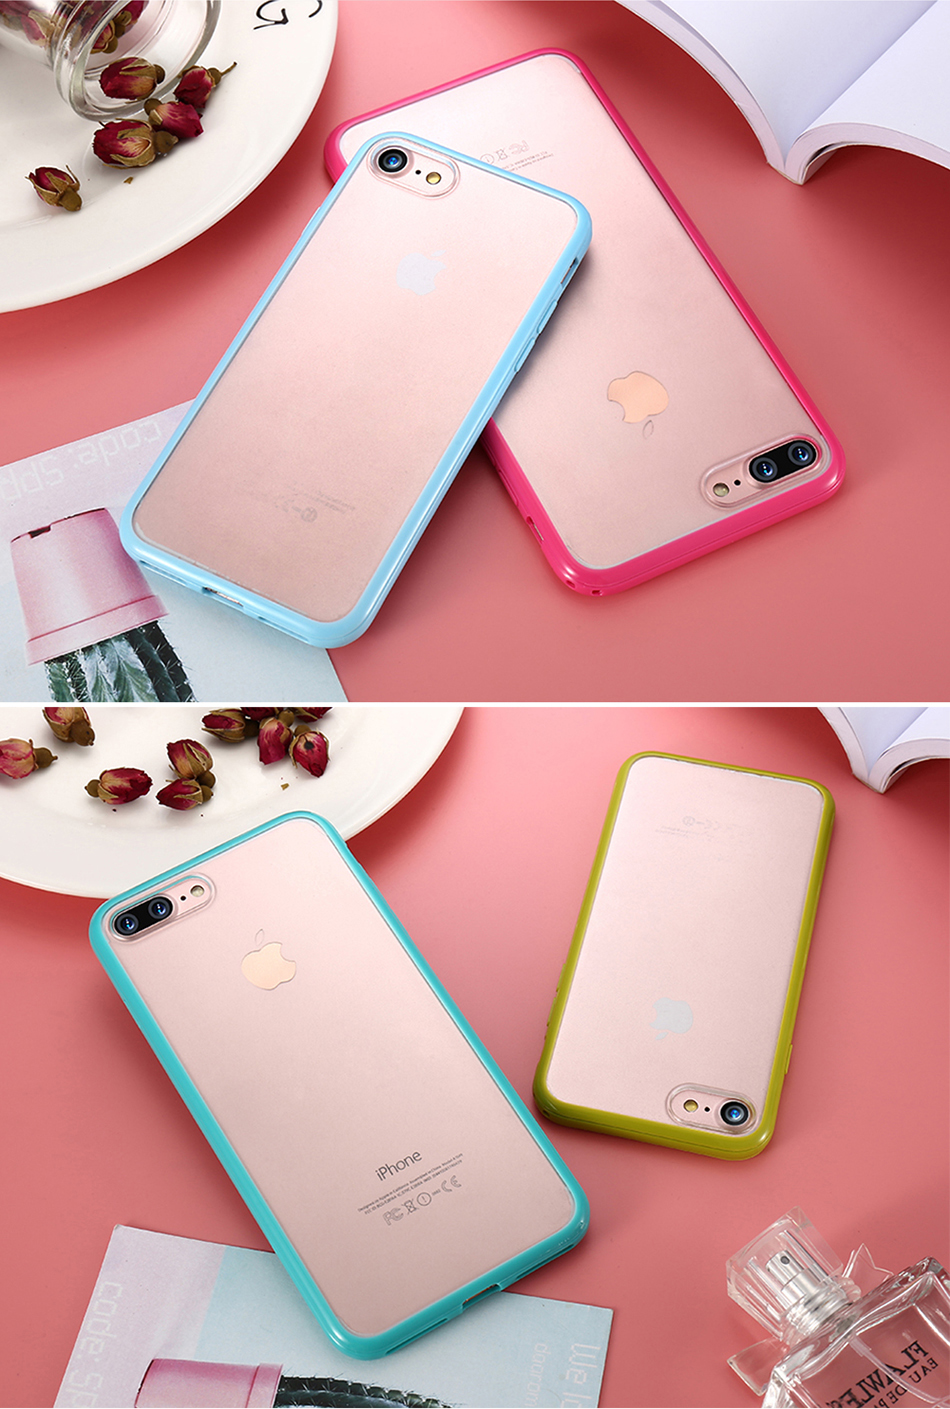 MR.YI Candy Color Frame Phone Case For iPhone 7 For iPhone 7 Plus Colorful Matte Clear Transparent Cover Case For iPhone 7 Plus (14)